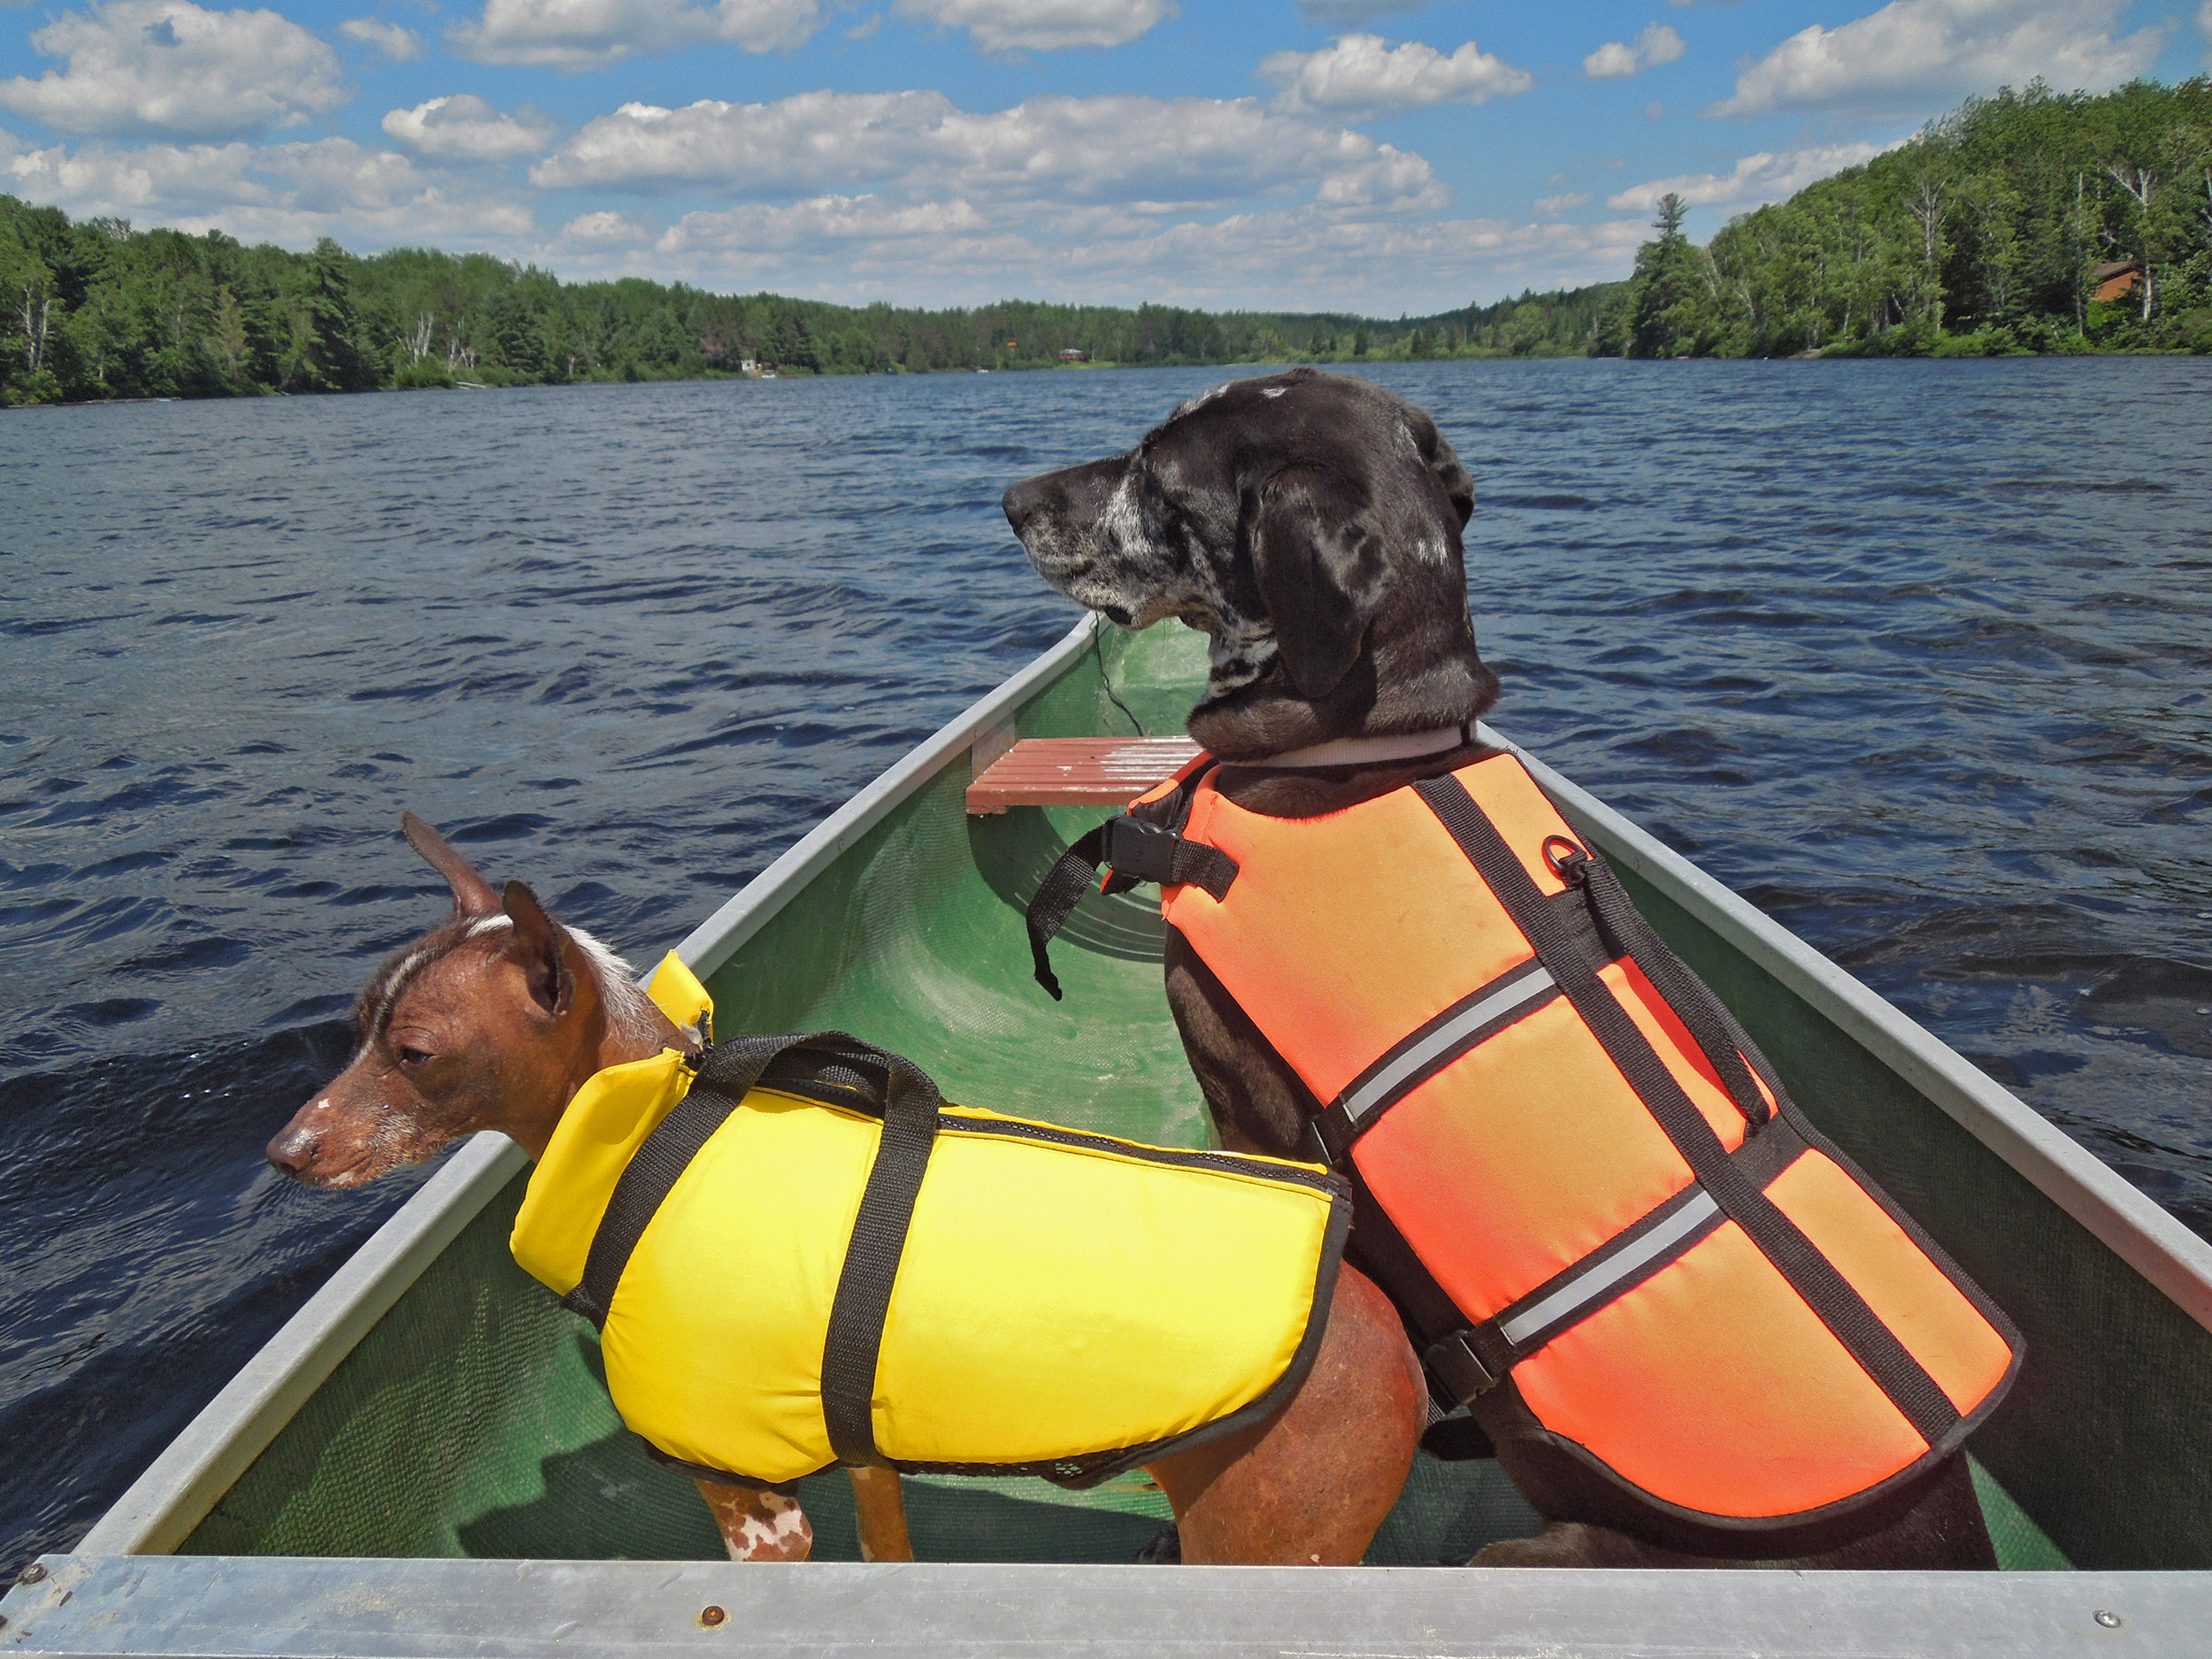 Heather Cowley – Canoeing Canines: Xak and Bounty never pass up an opportunity for a ride in the canoe or chance to practice safe boating; Lake St. Peter, Ontario.